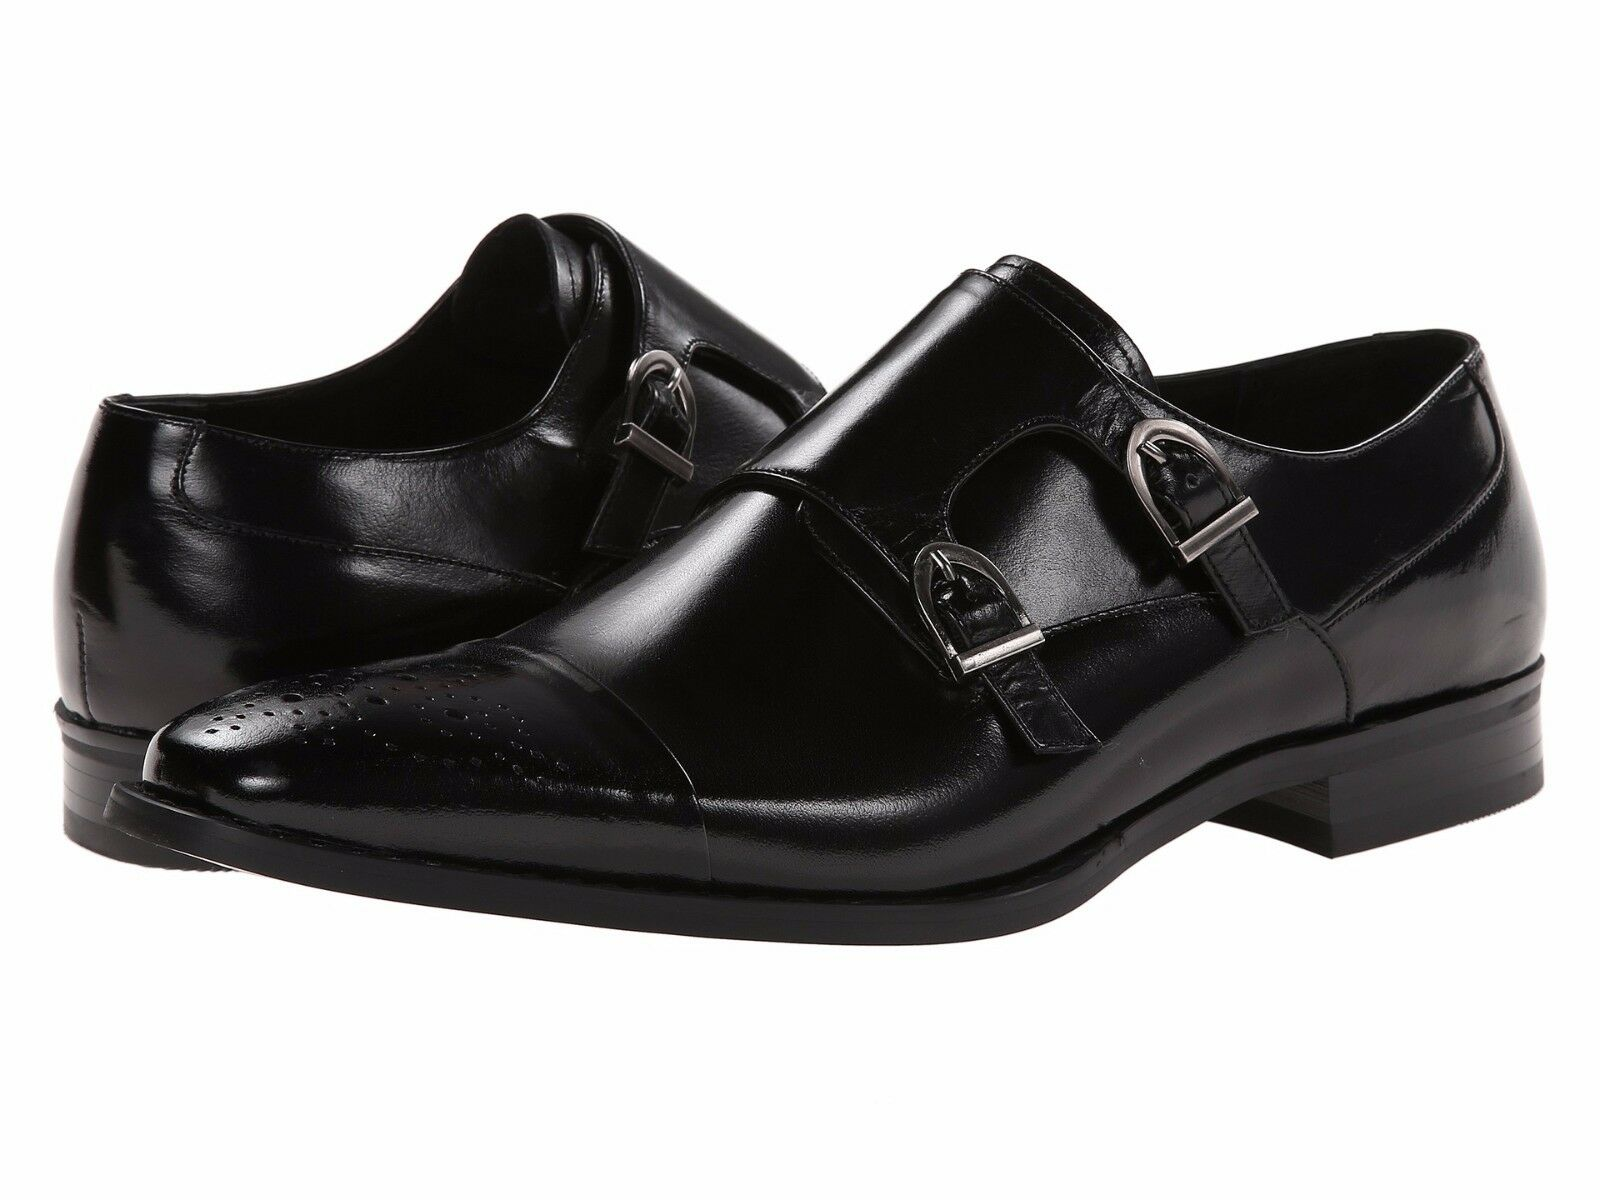 Men's shoes Stacy Adams Trevor Monkstrap Cap Toe Loafer 24943-001 Black New